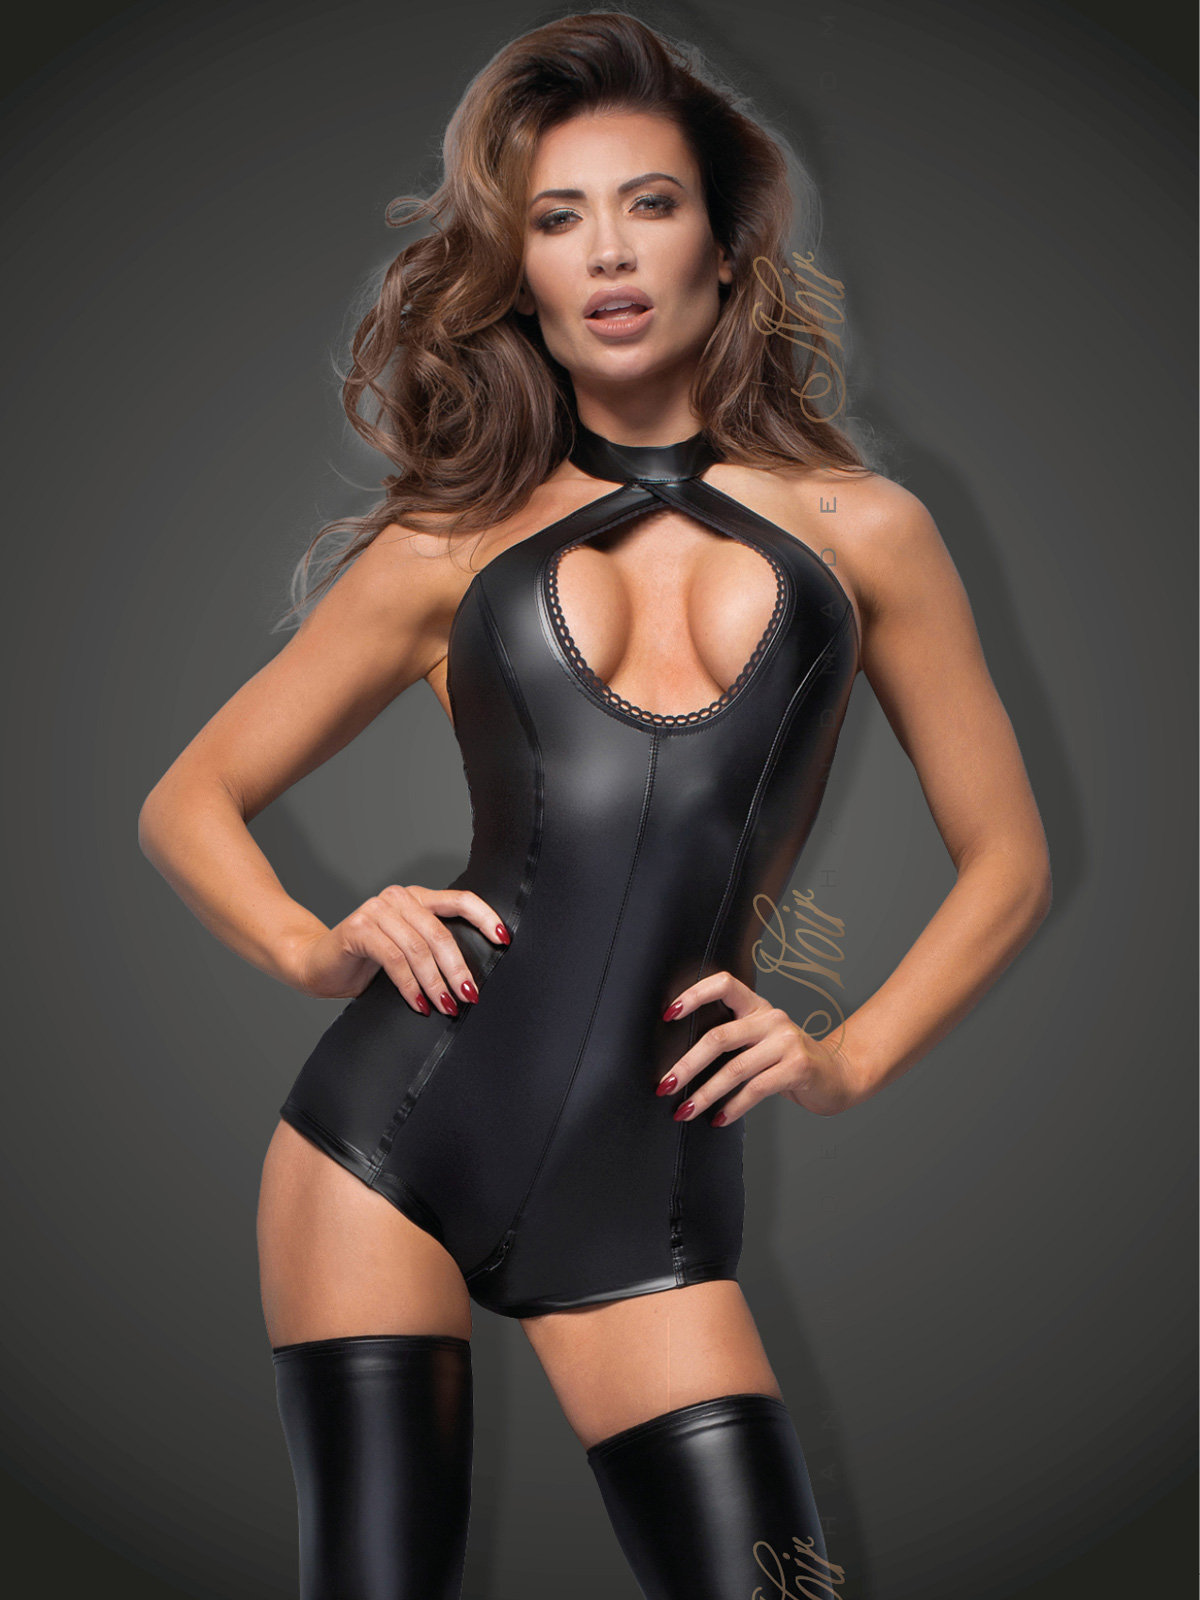 Noir Handmade Body Powerwetlook with lace cleavage Negru